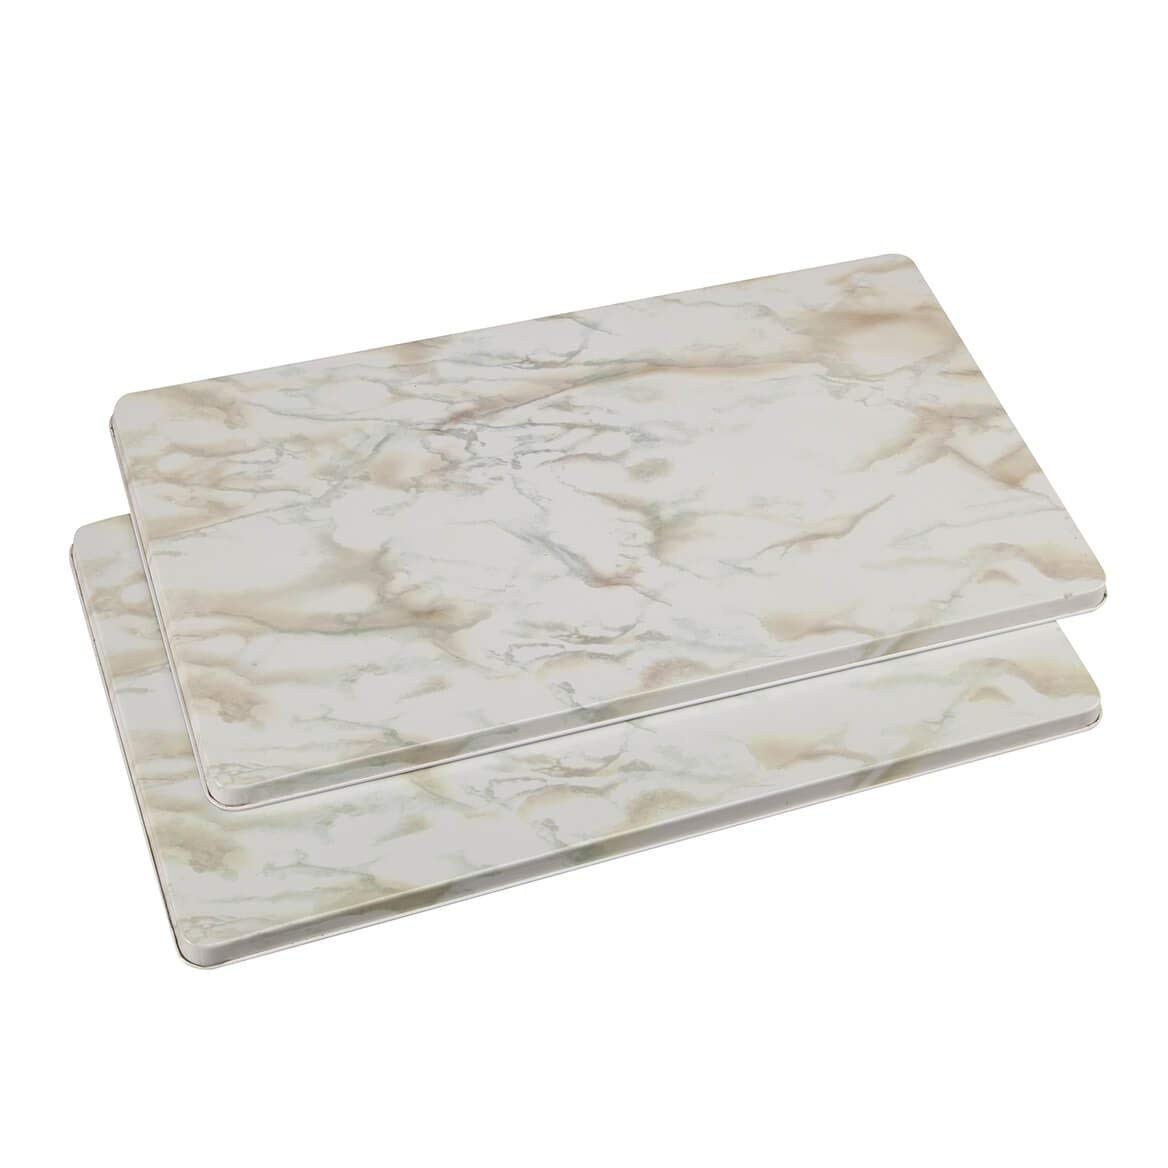 Miles Kimball 362361 Marble Burner Covers Set of 2 - White, 1x11.75x20.5,